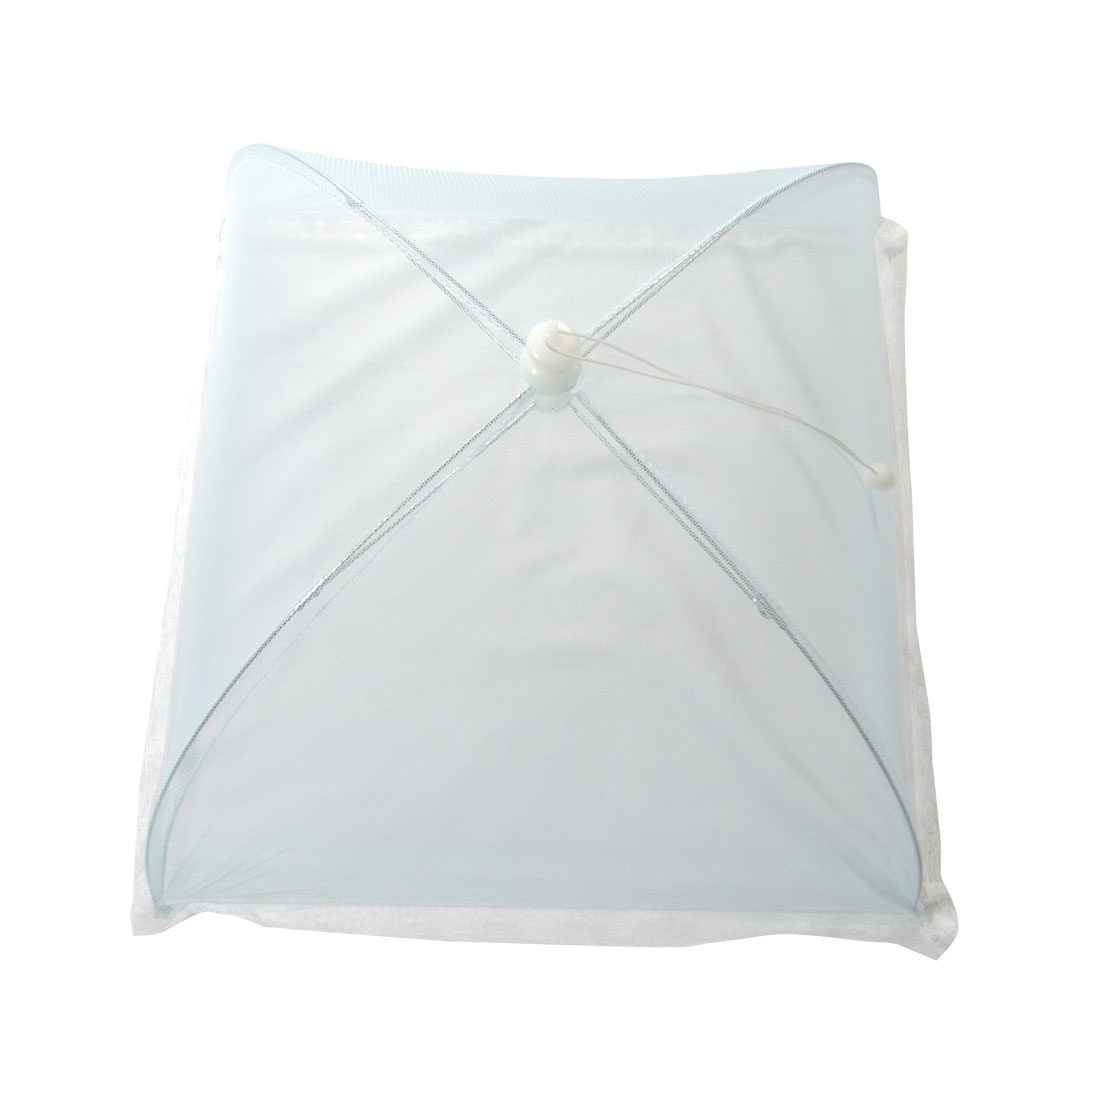 Skyblue Collapsible White Lace Hem Metal Frame Picnic Food Cover Umbrella